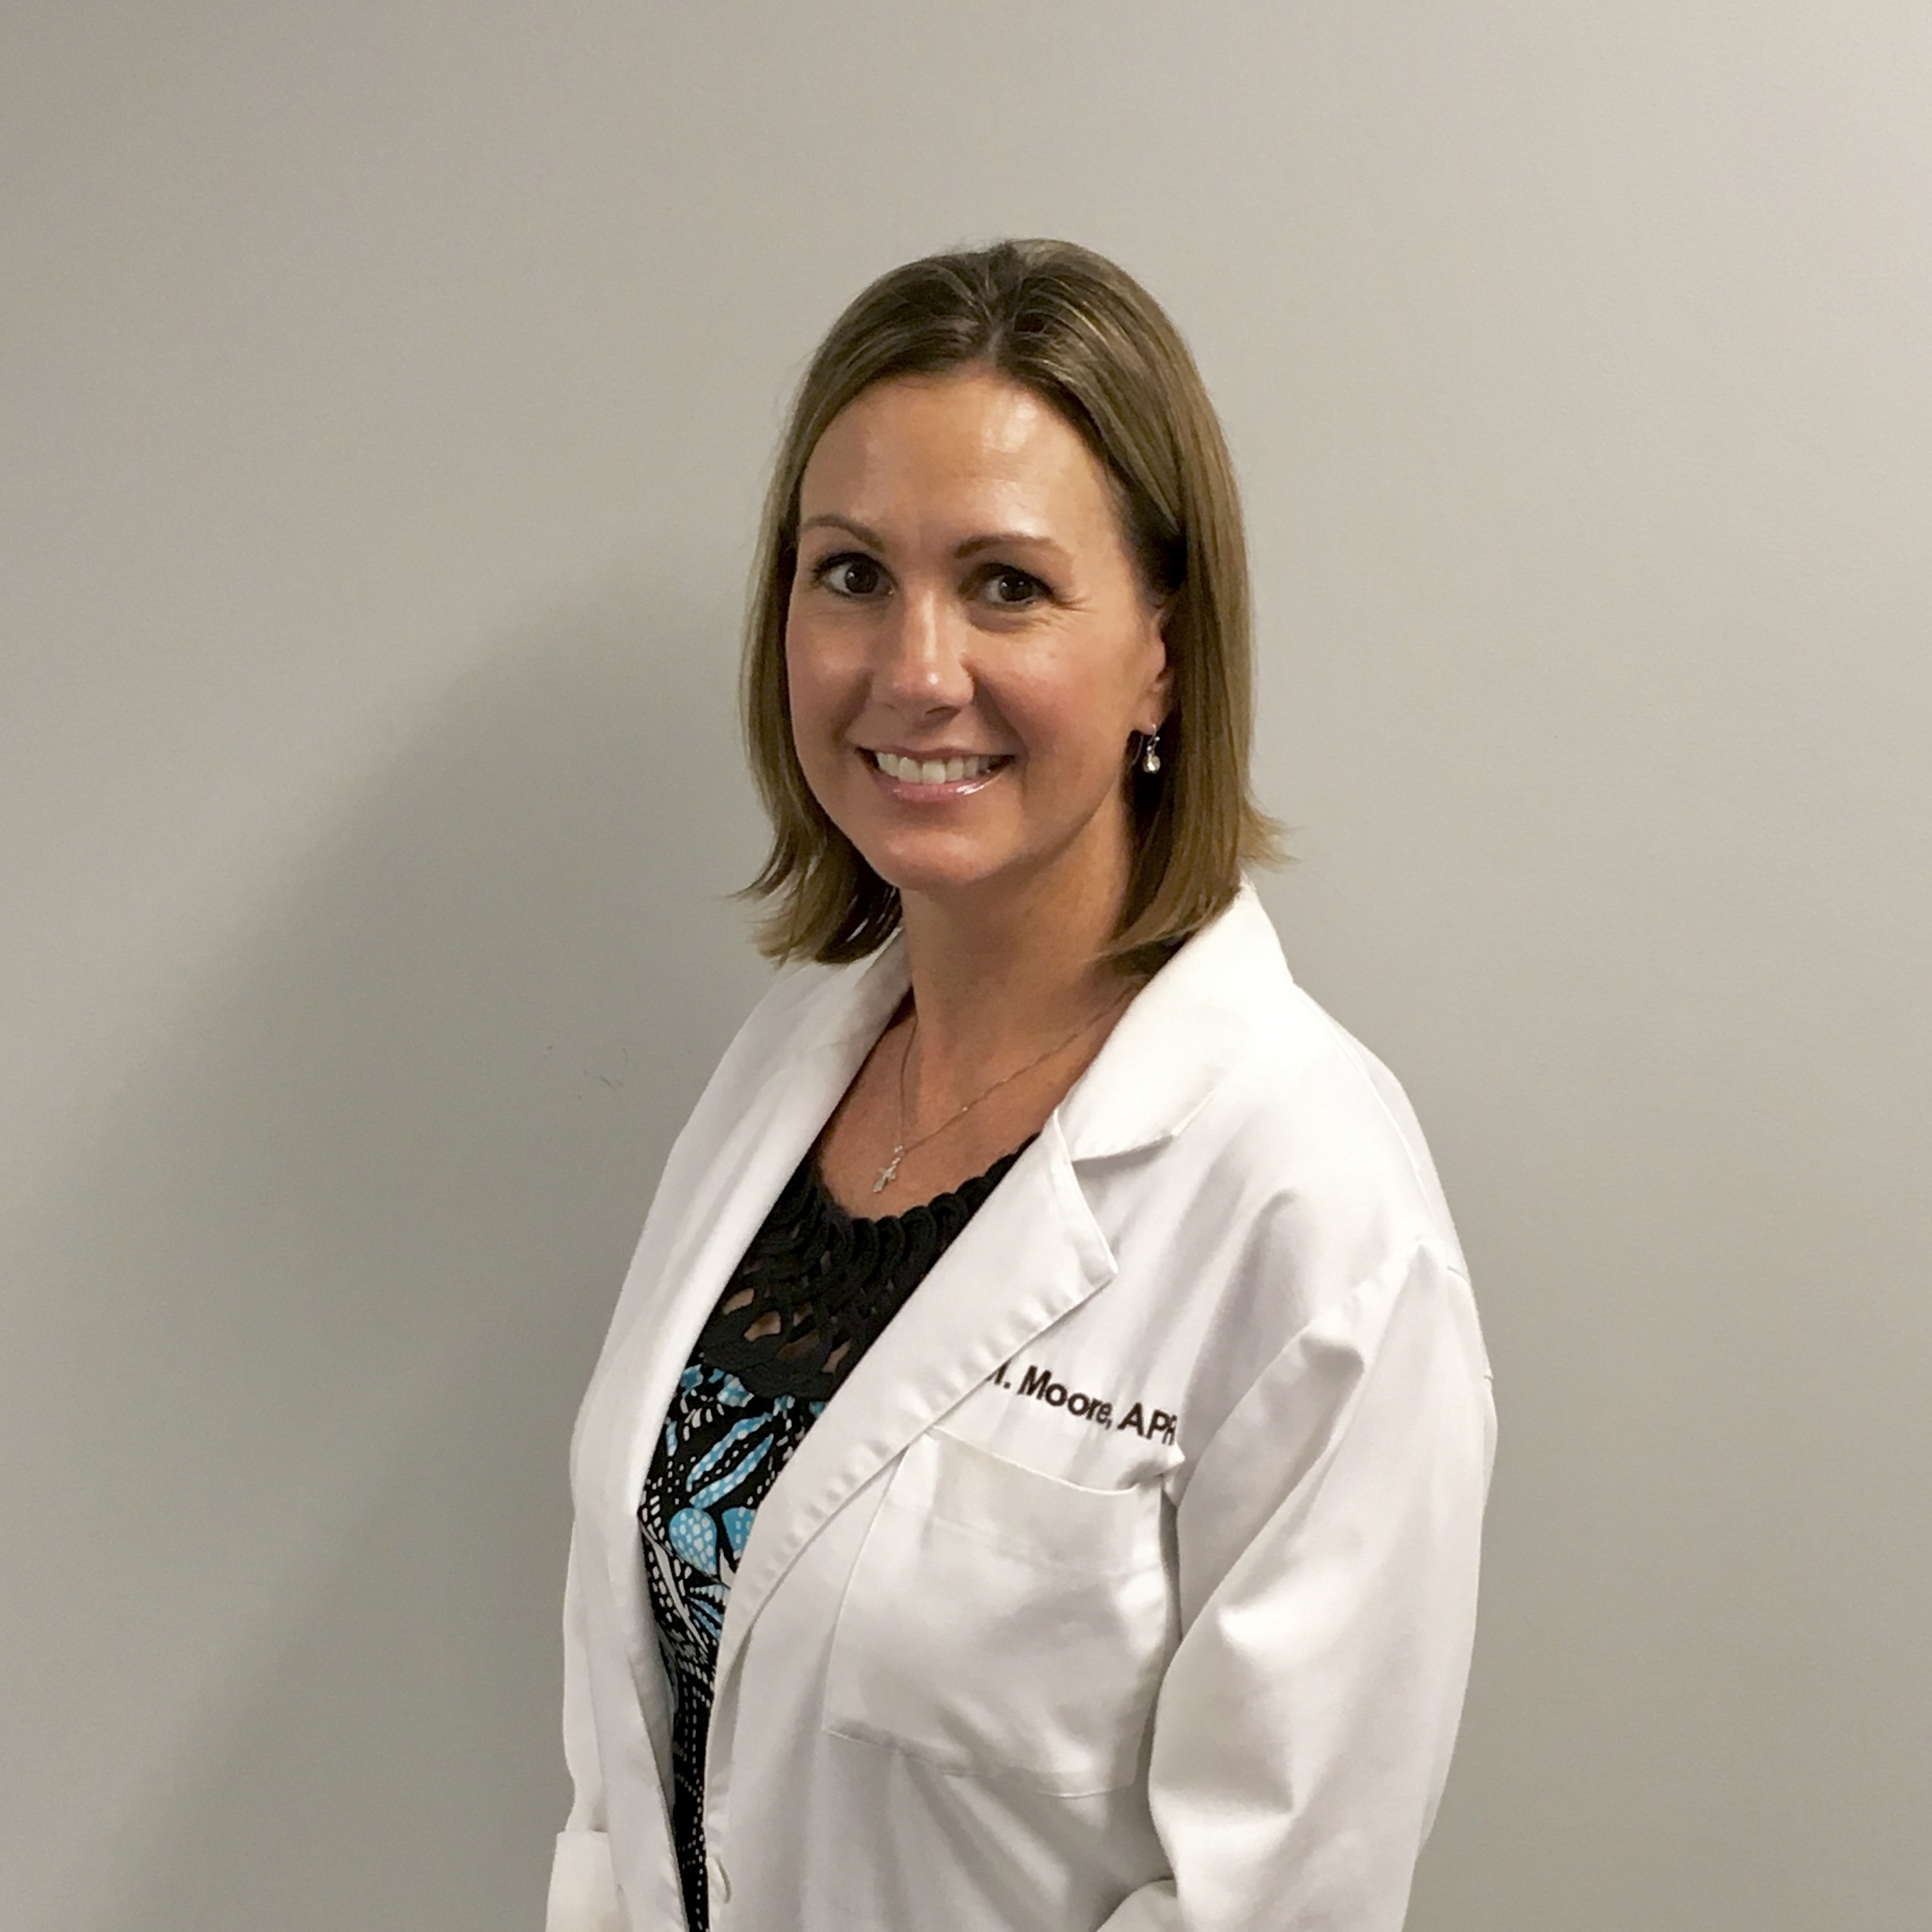 Melanie Moore, APRN (click for more info)